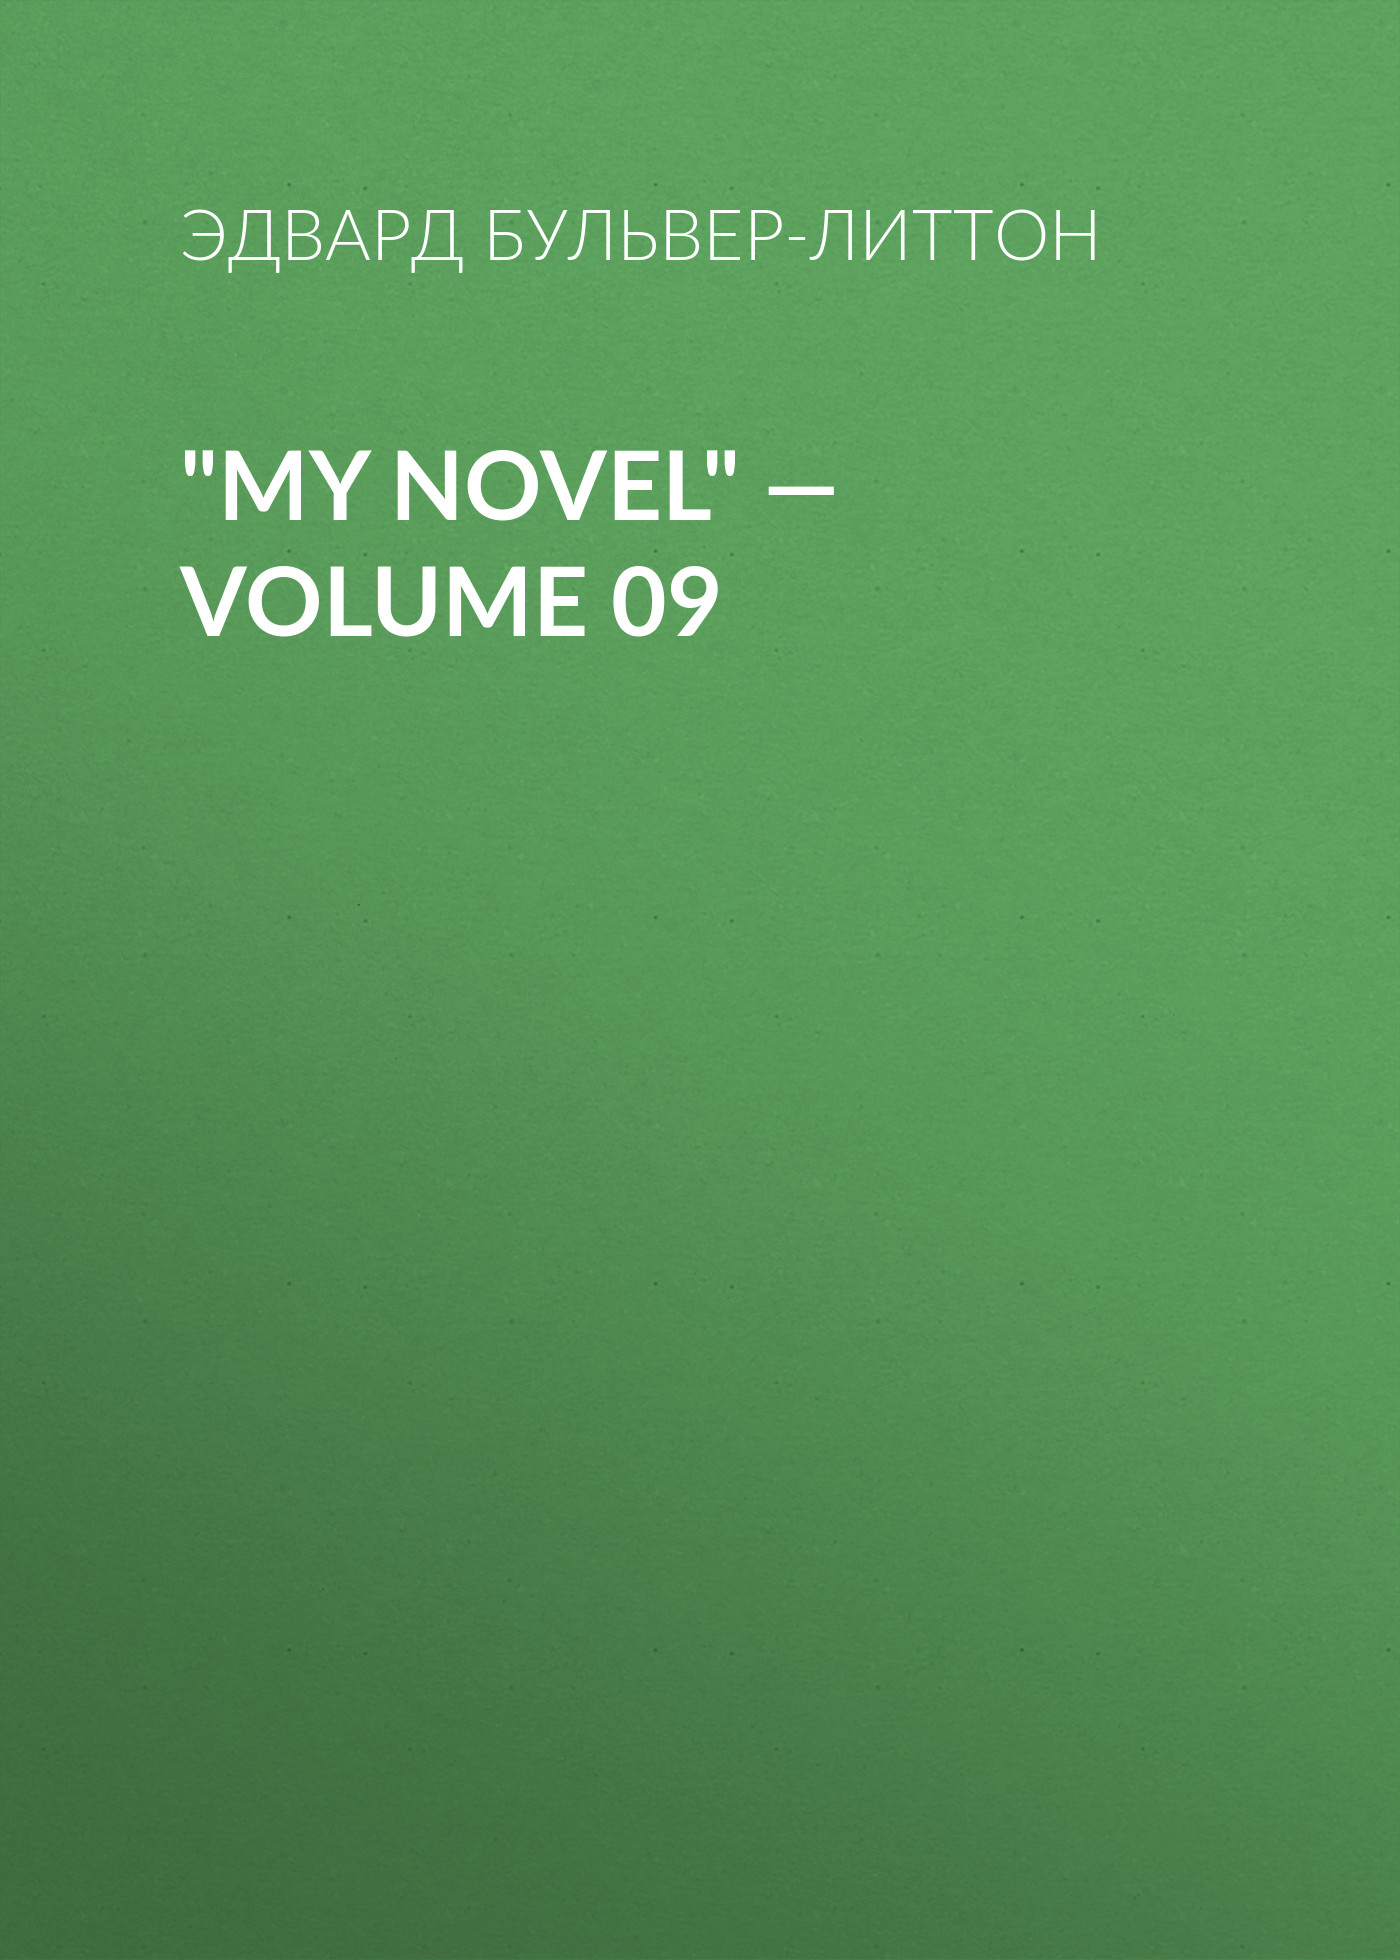 Эдвард Бульвер-Литтон My Novel — Volume 09 эдвард бульвер литтон my novel volume 05